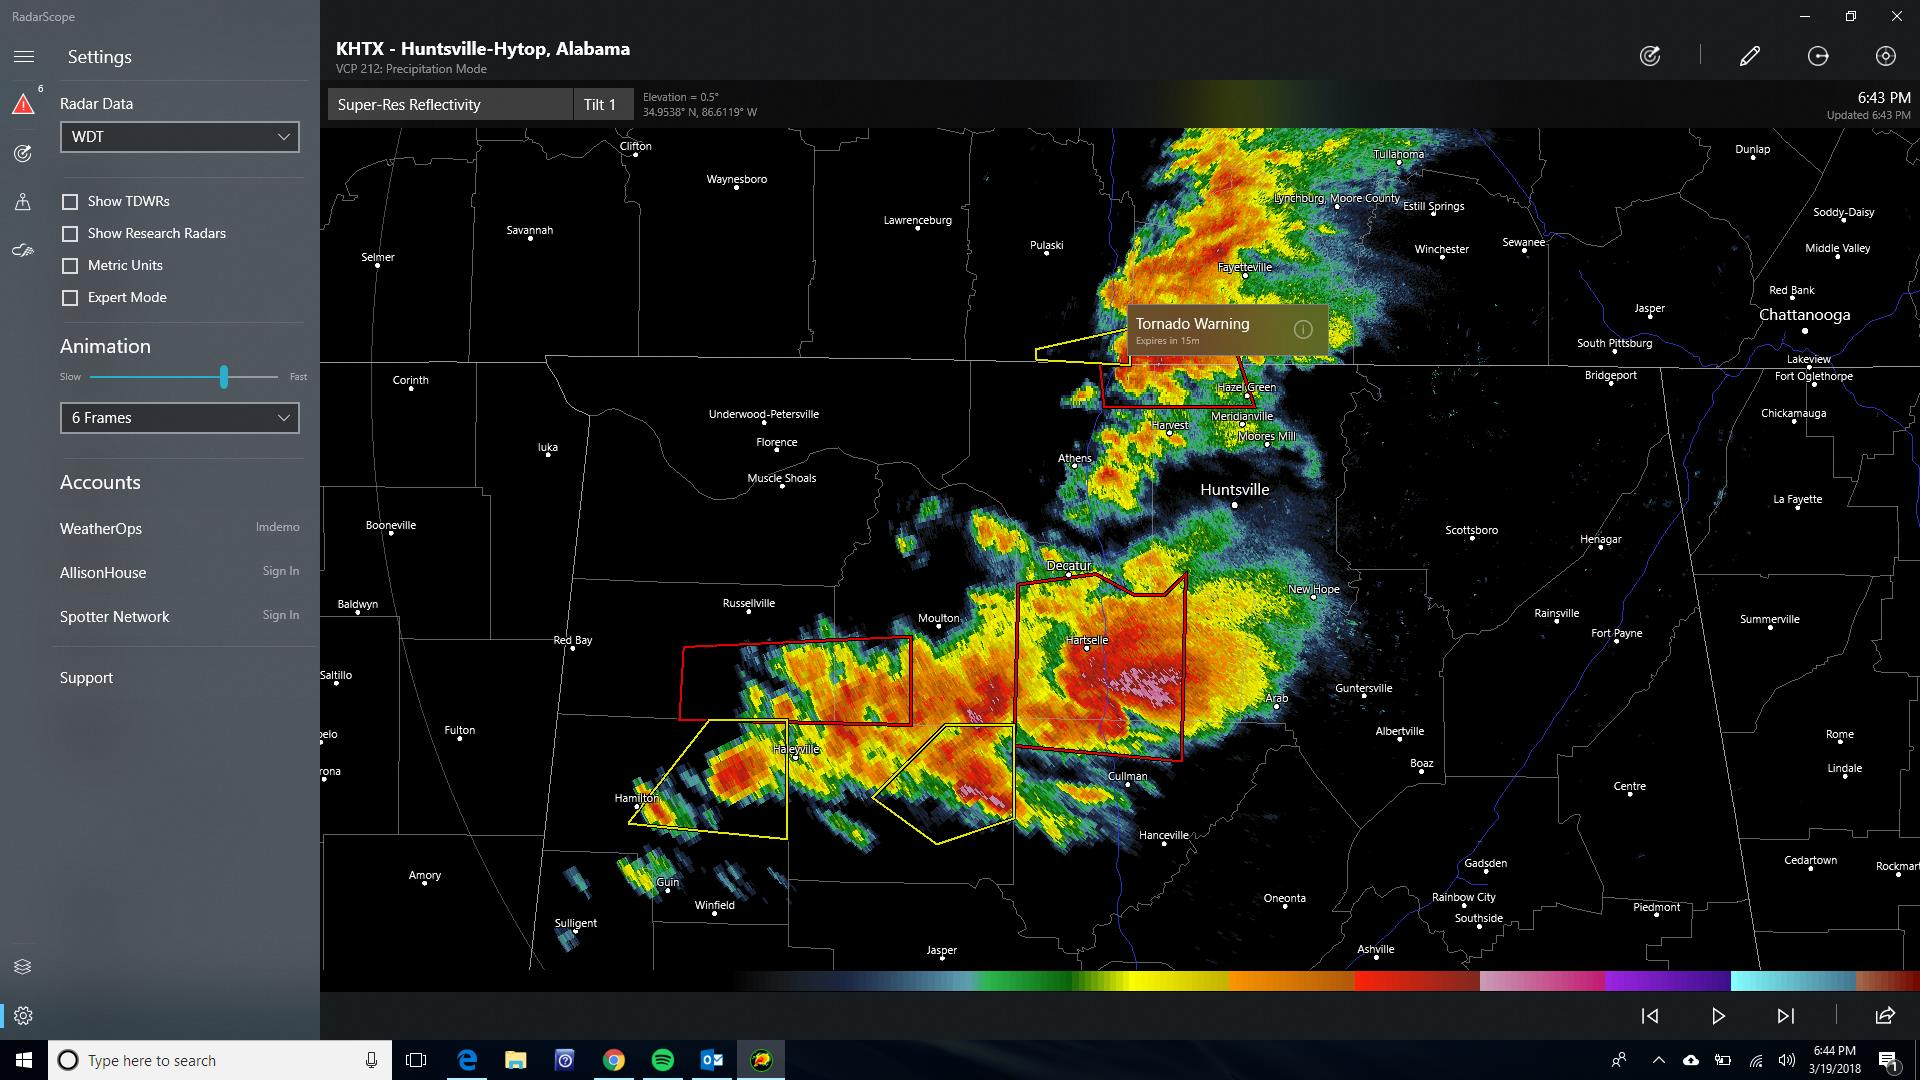 Celebrating 10-Years of RadarScope with an All-new Version for Windows 10 Users